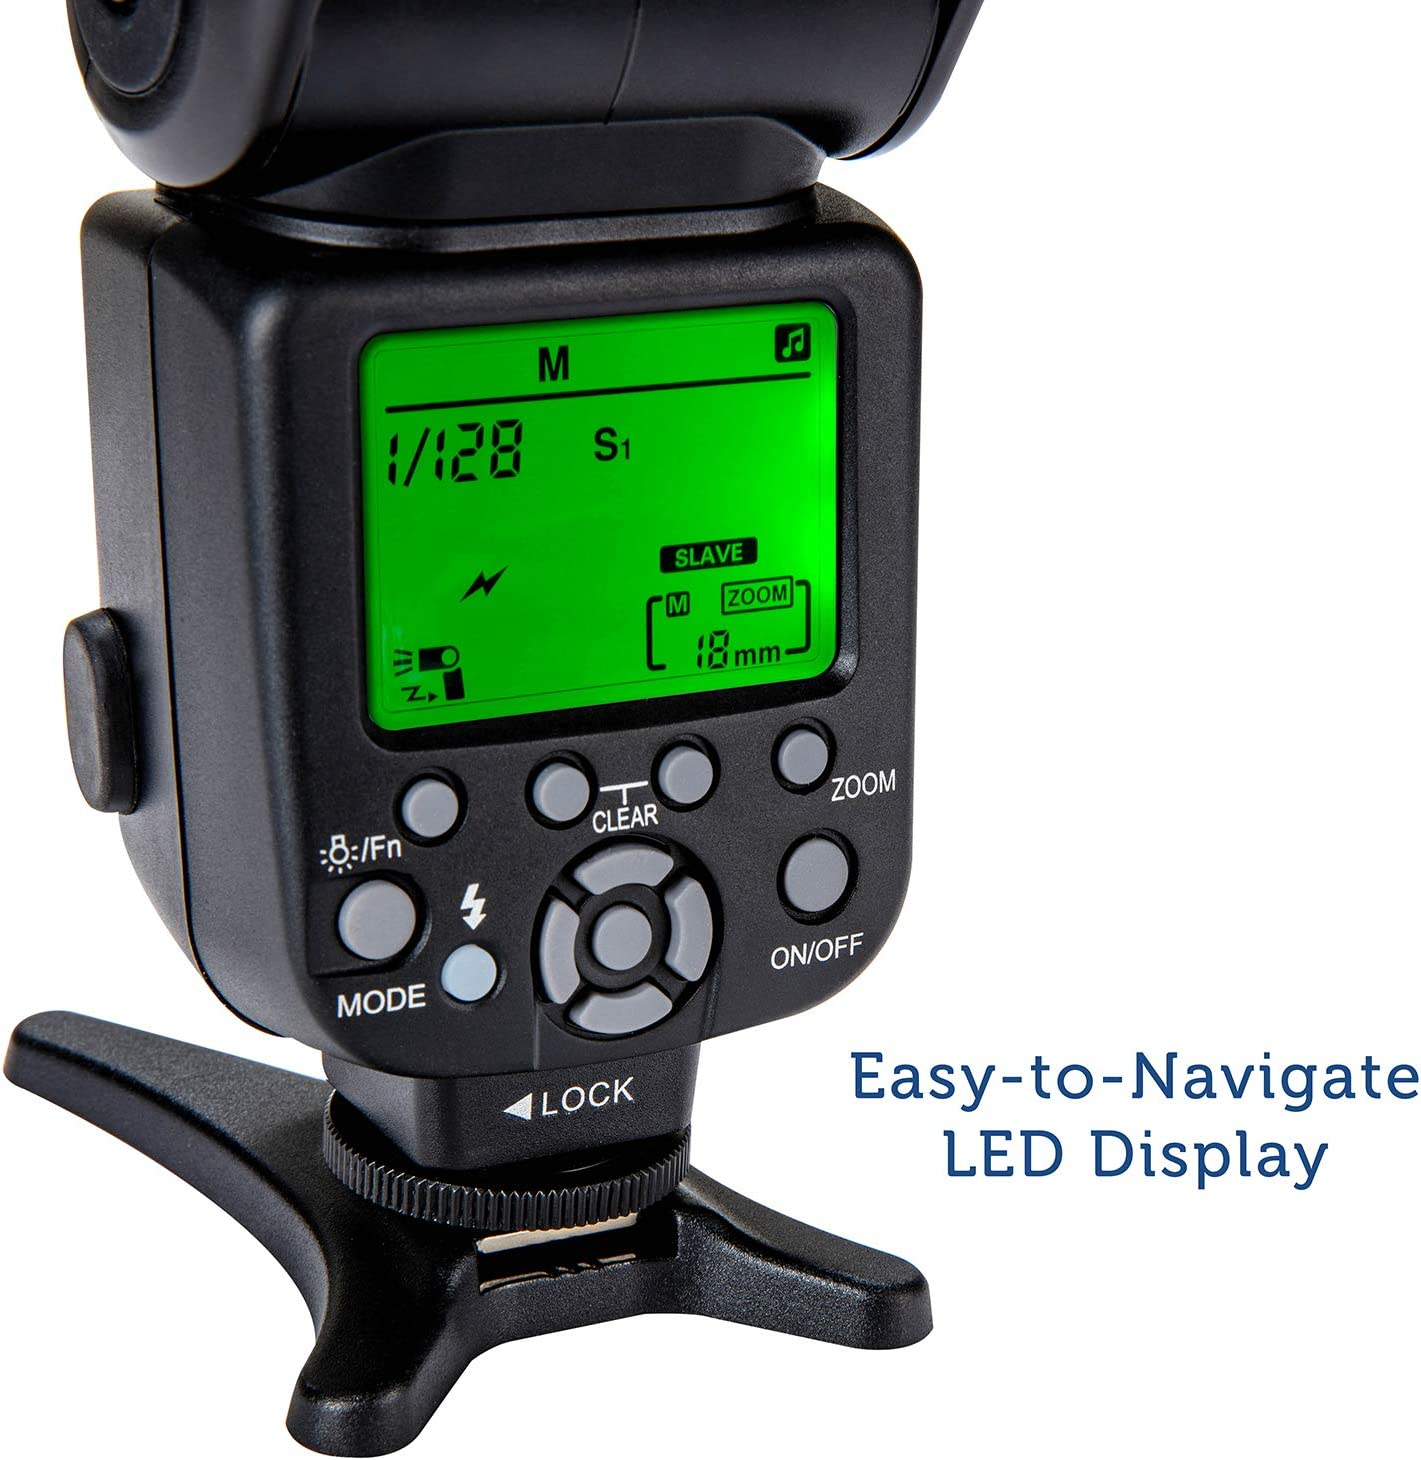 Wireless /& TTL With LCD Display Polaroid Professional Hot Shoe Flash For All Nikon DSLR Cameras